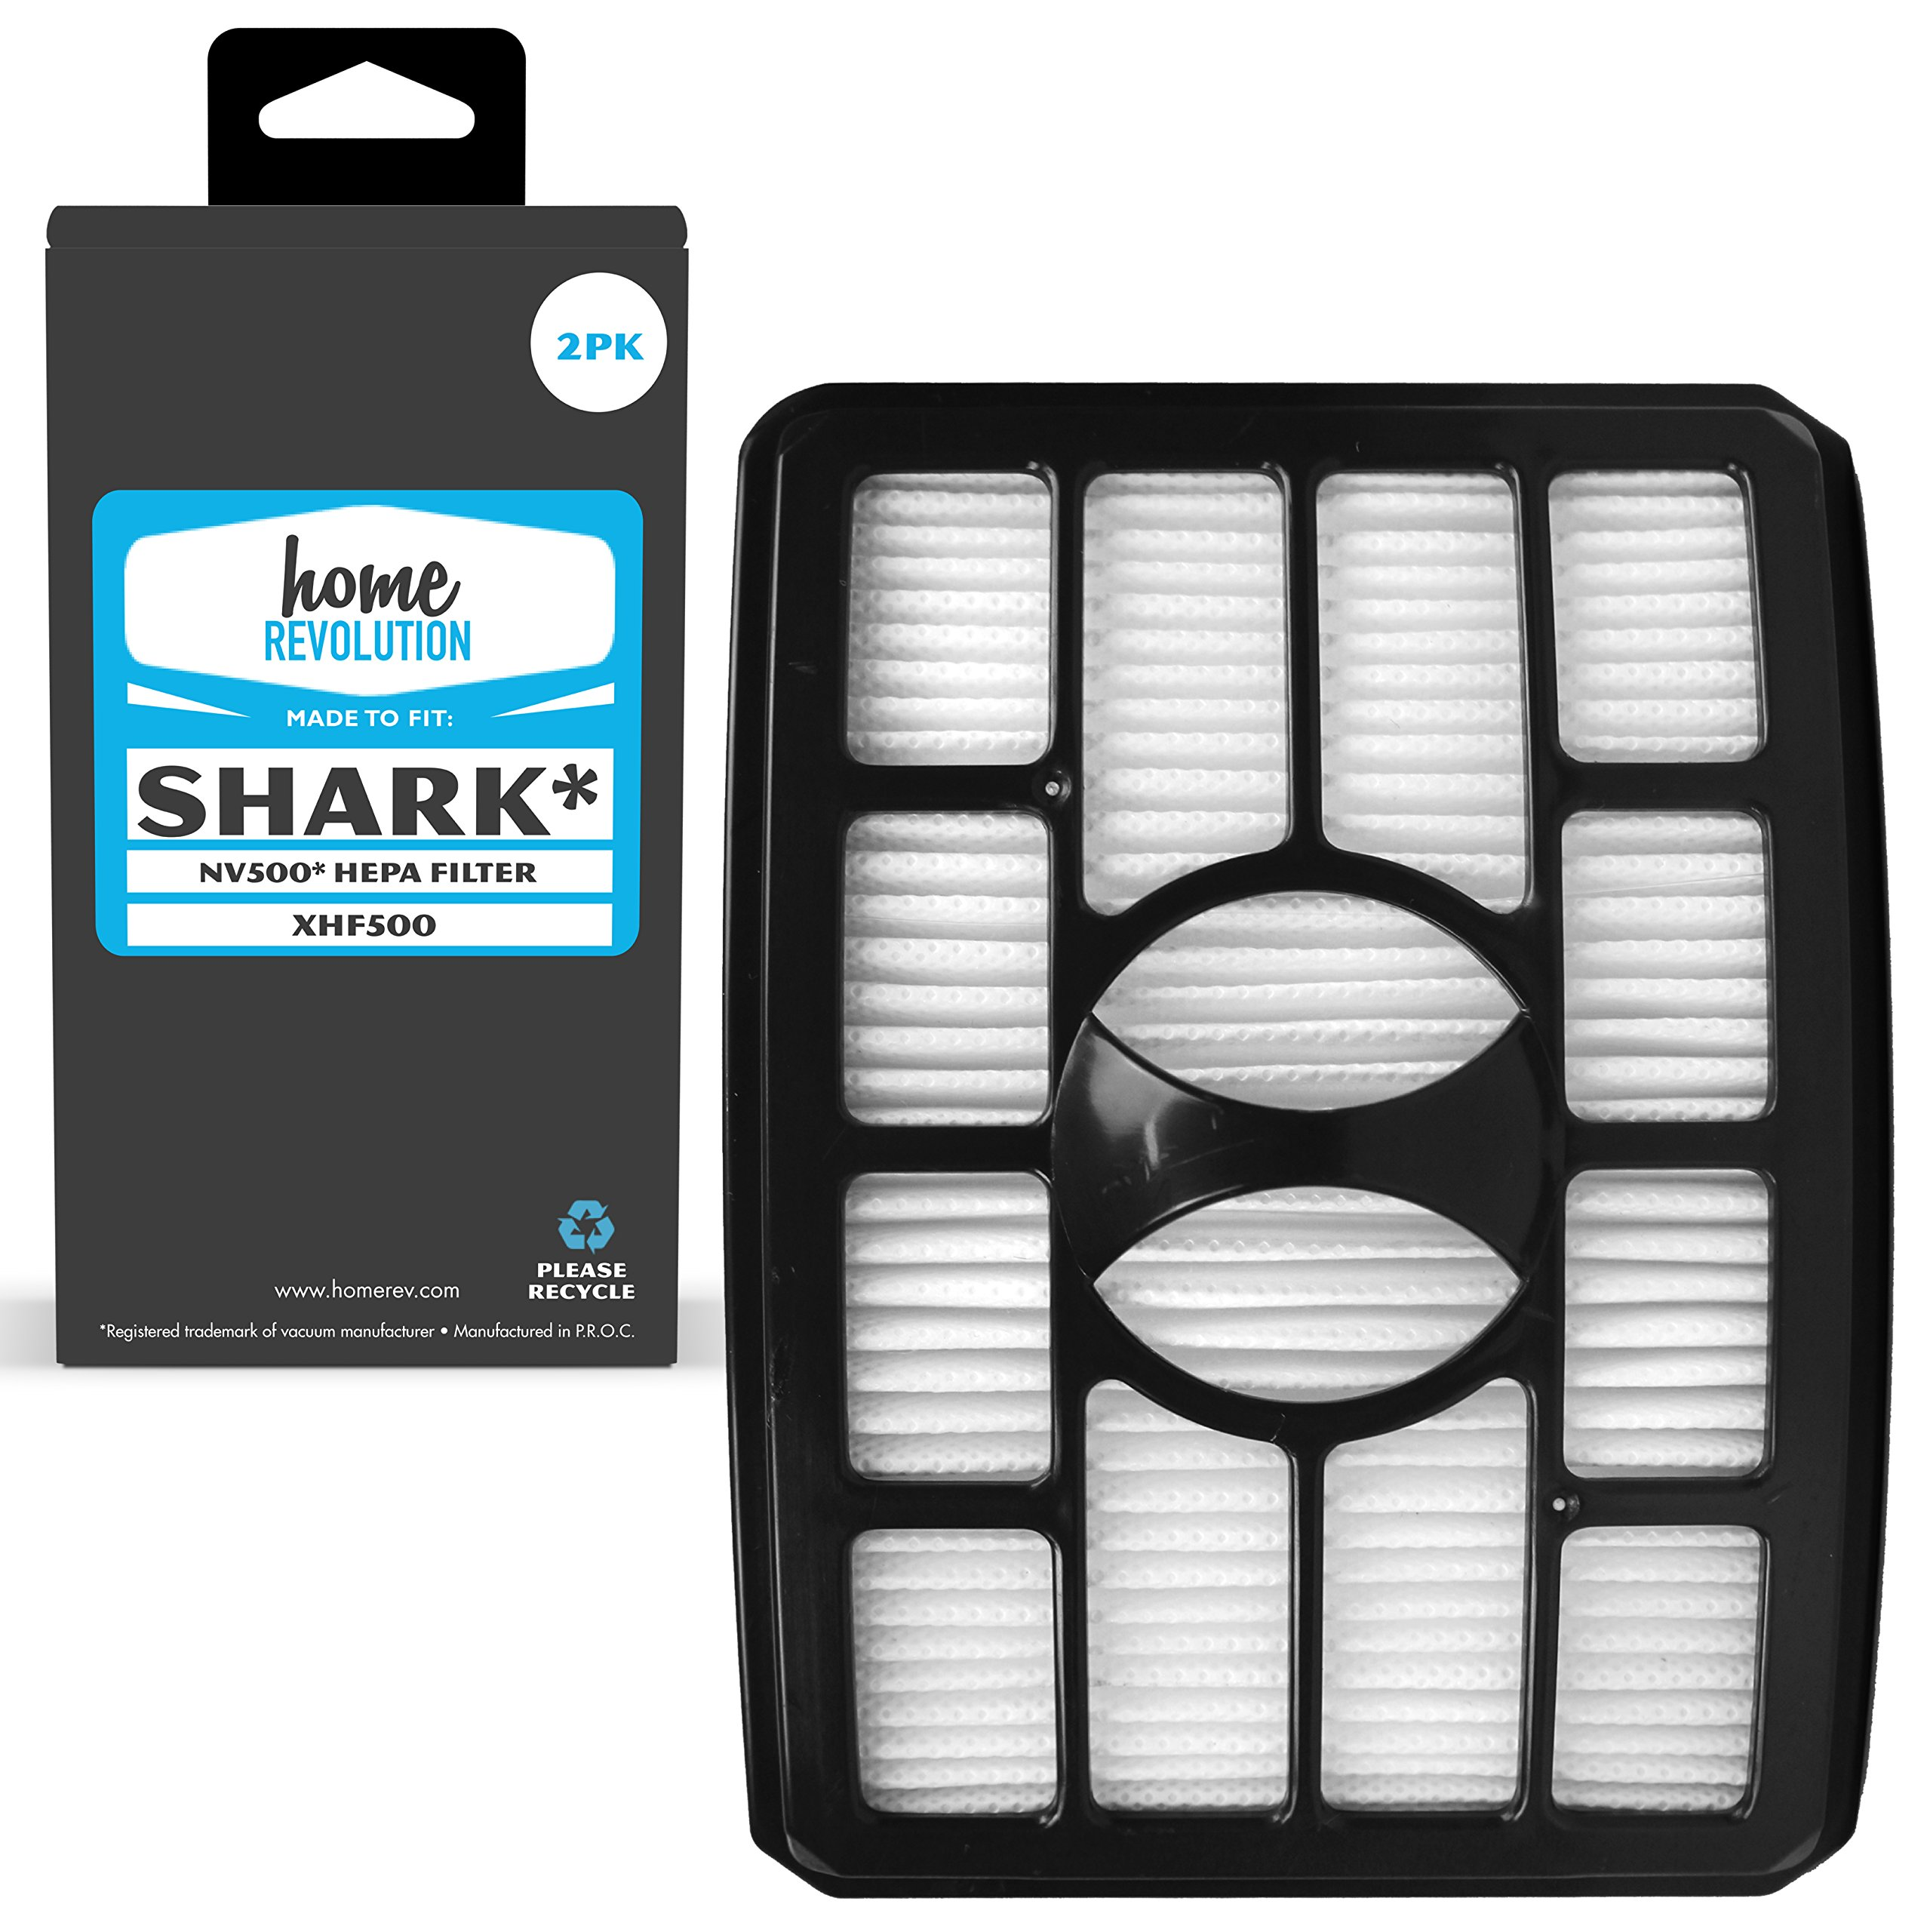 Shark Part # XHF500 for NV500 Rotator Pro Lift-Away Vacuum, Comparable HEPA Filter. A Home Revolution Brand Quality Aftermarket Replacement 2PK by Home Revolution